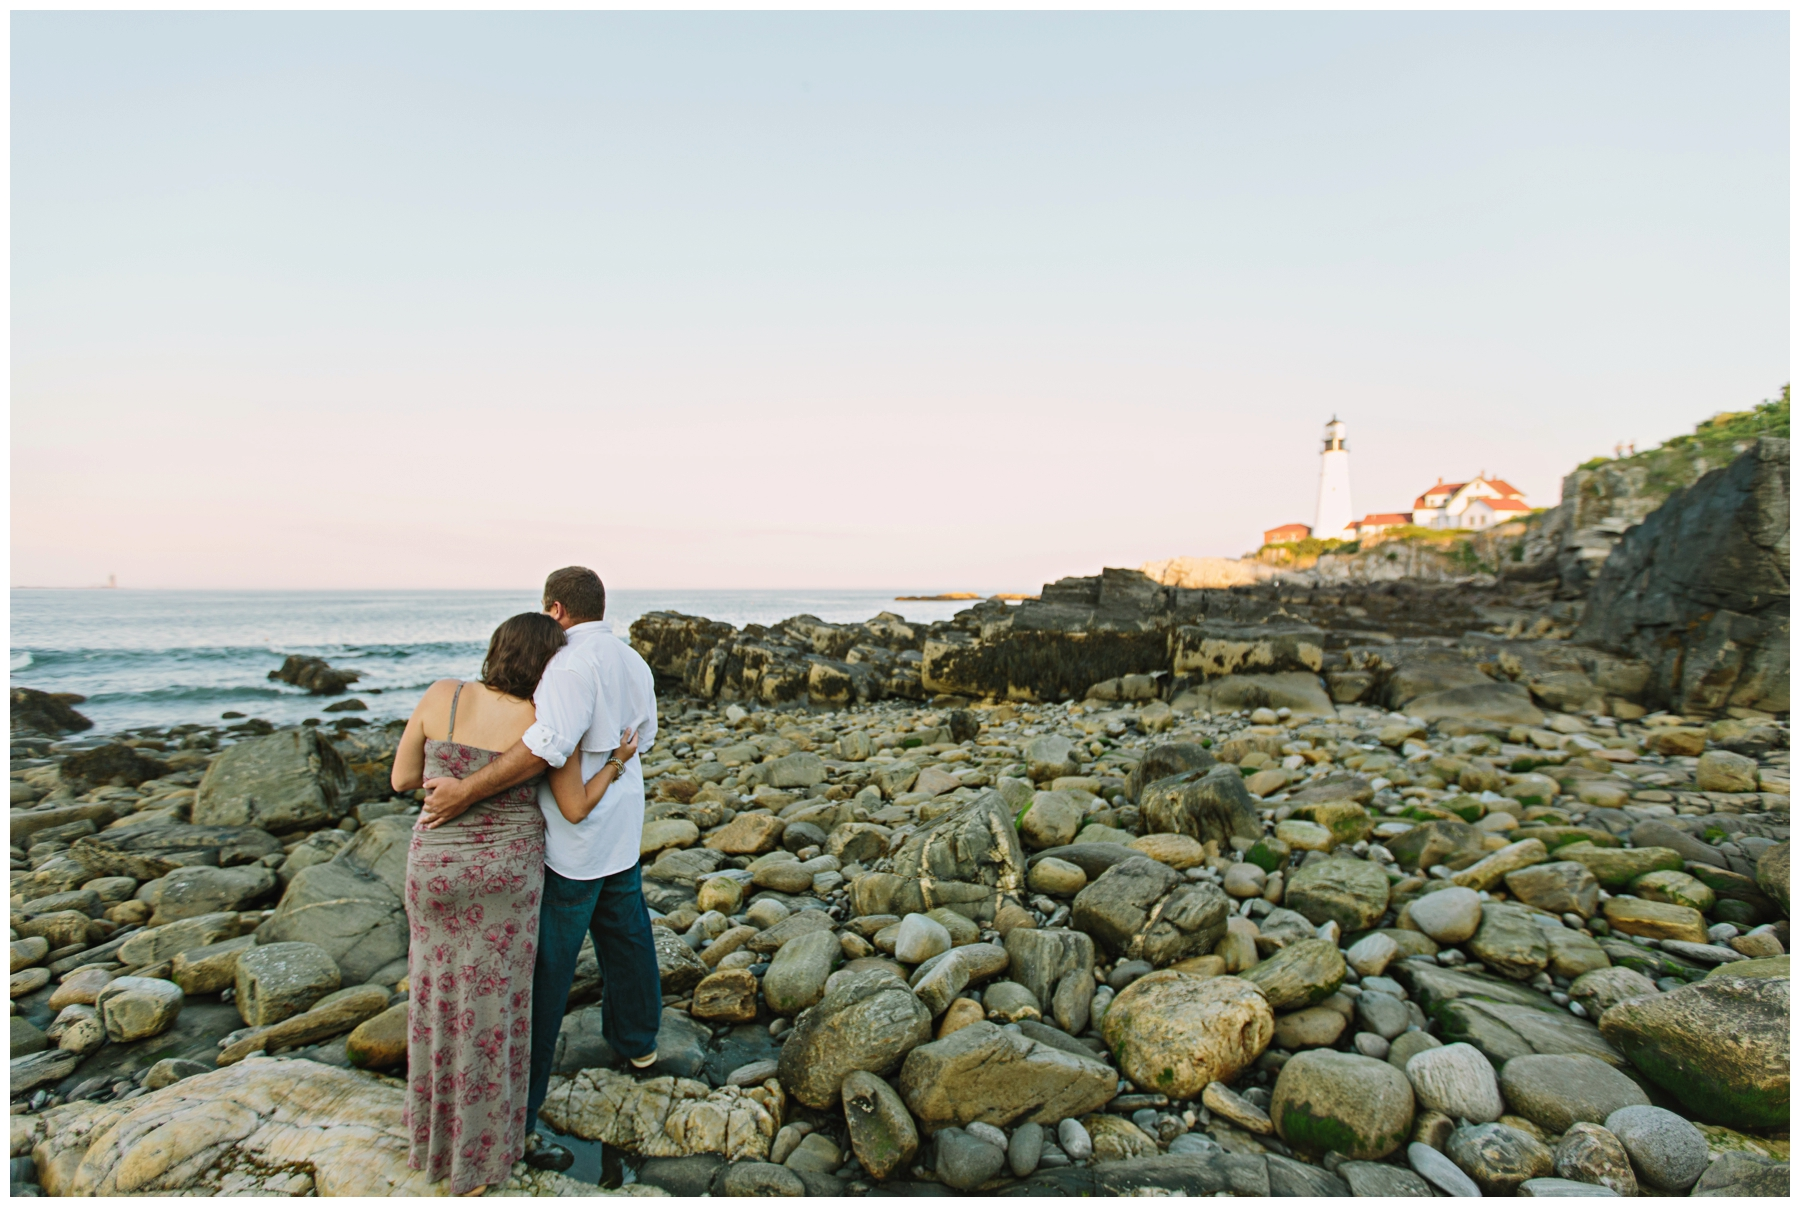 Maine_Photographer_Engagements_FortWilliams_PortlandHeadLight_lighthouse_coastal_seaside-009